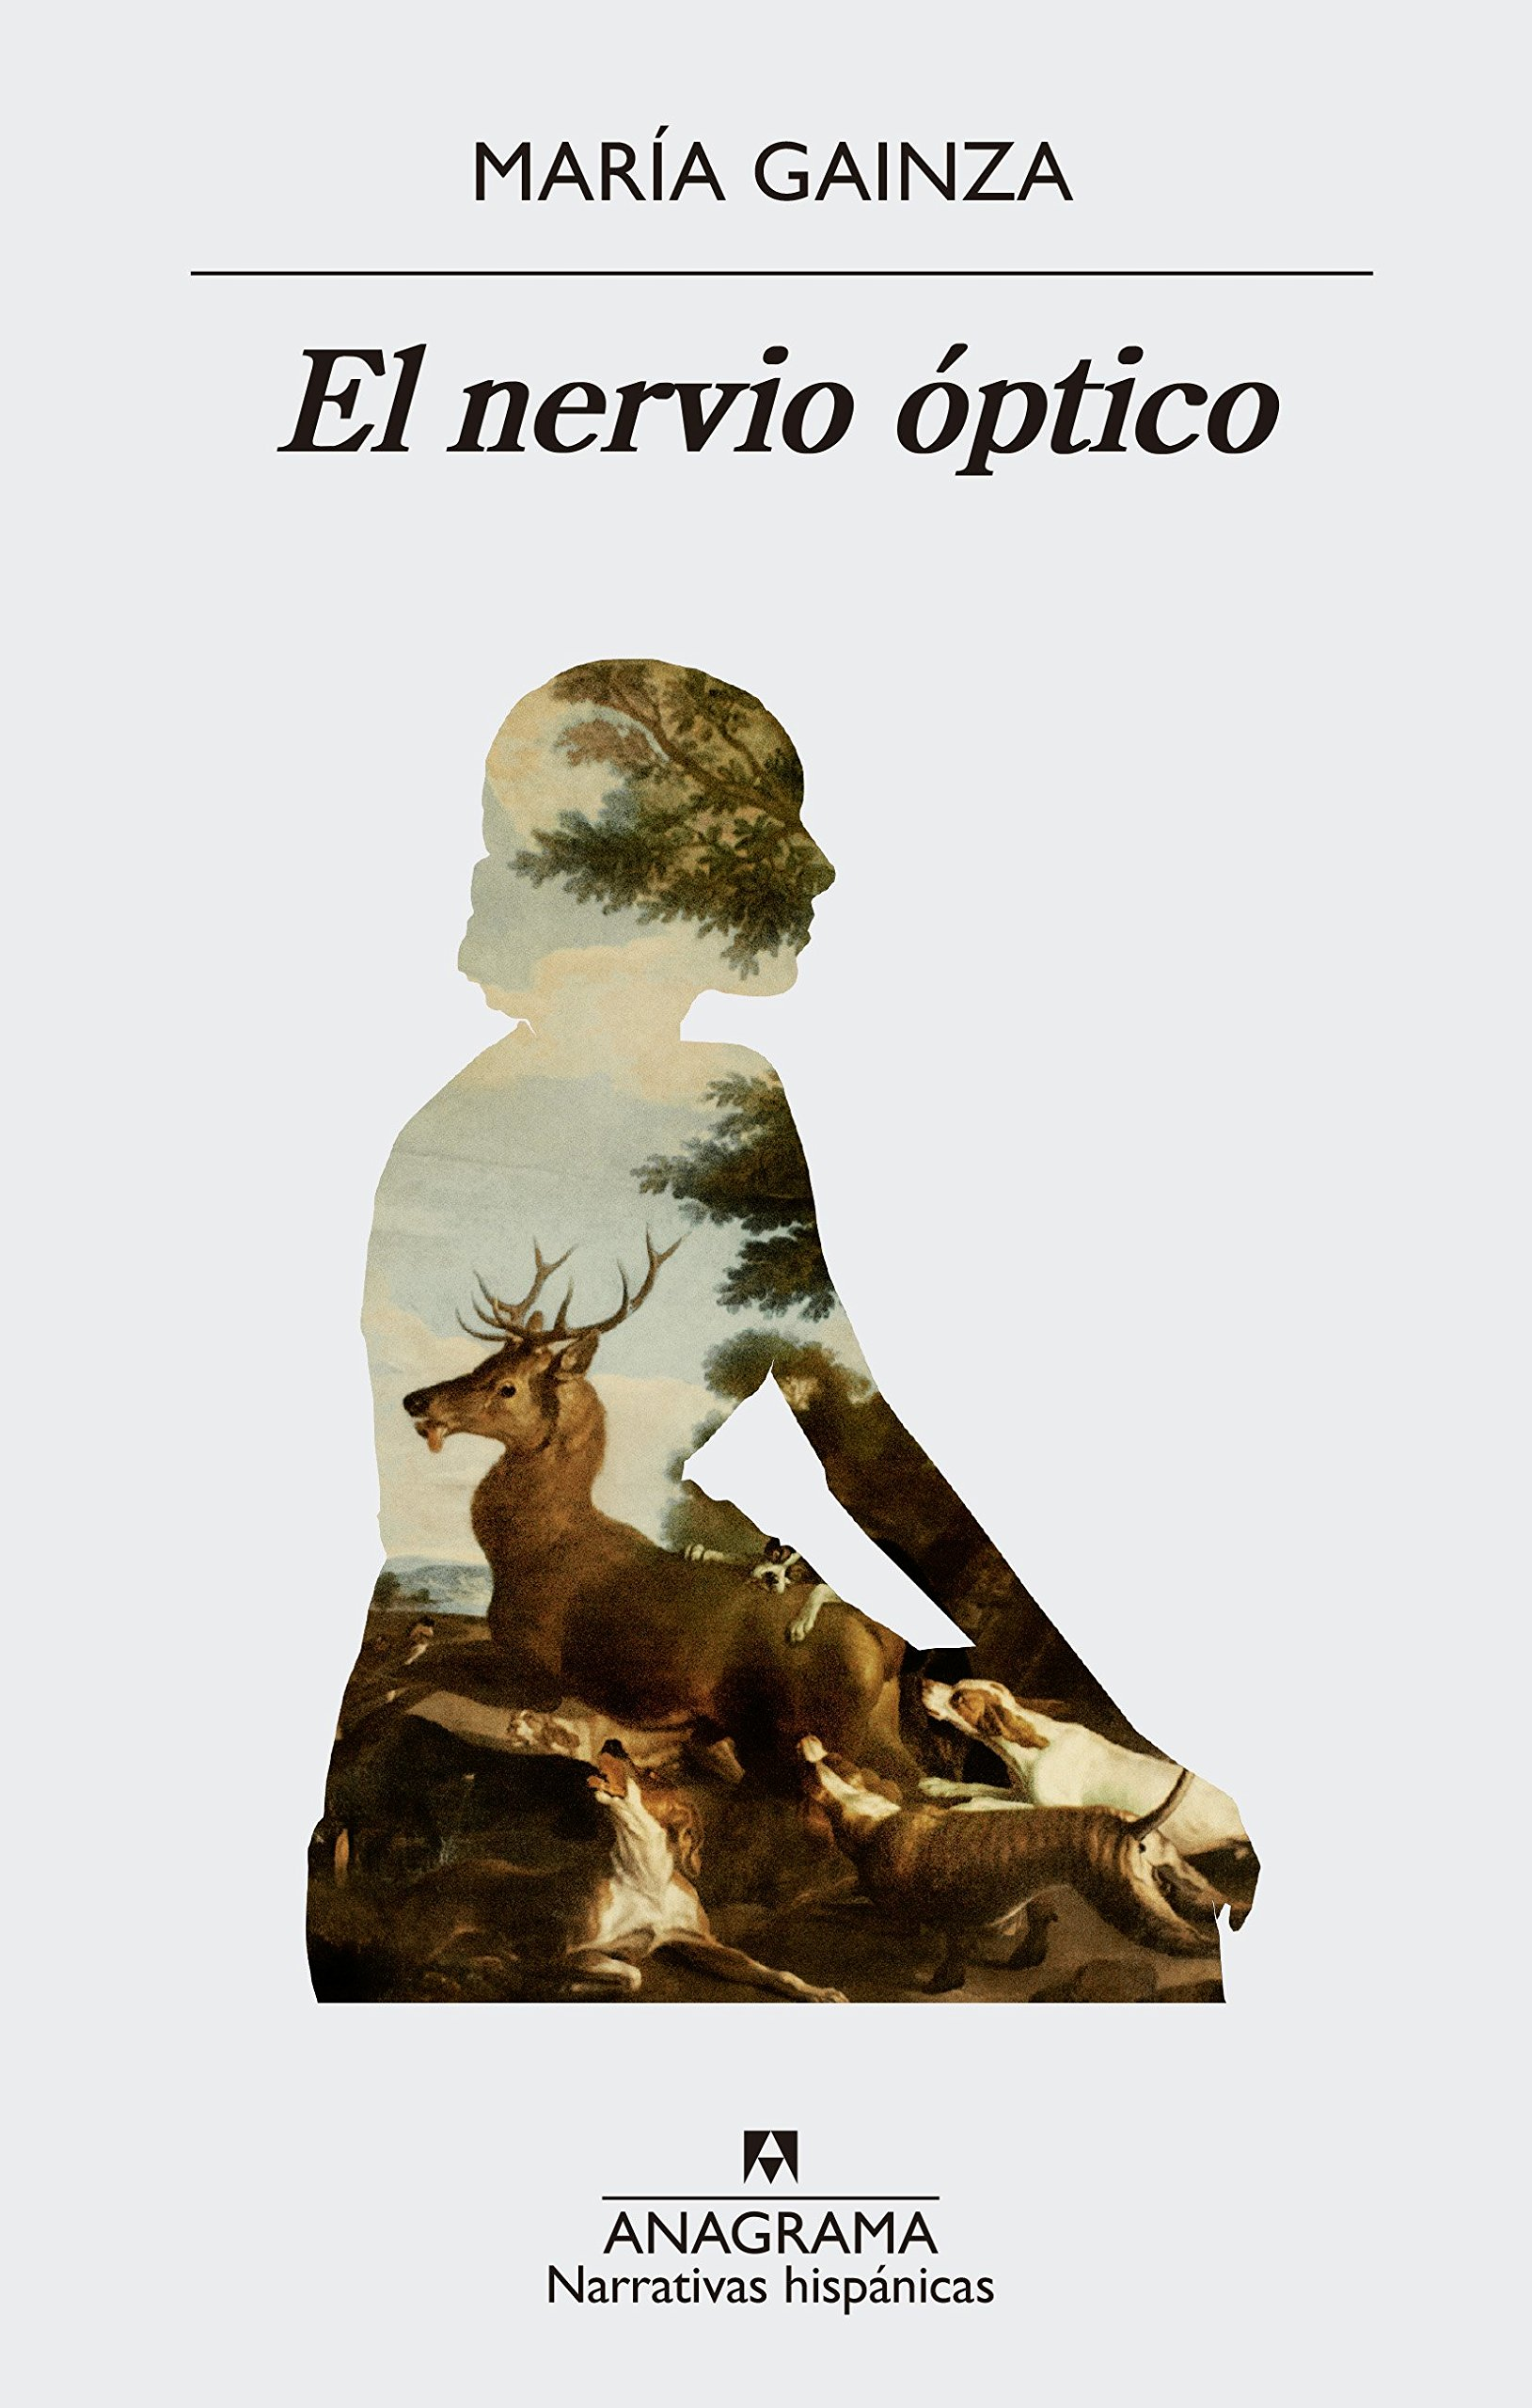 the cover for El nervio optico showing a figure creating a silhouette with a deer inside.